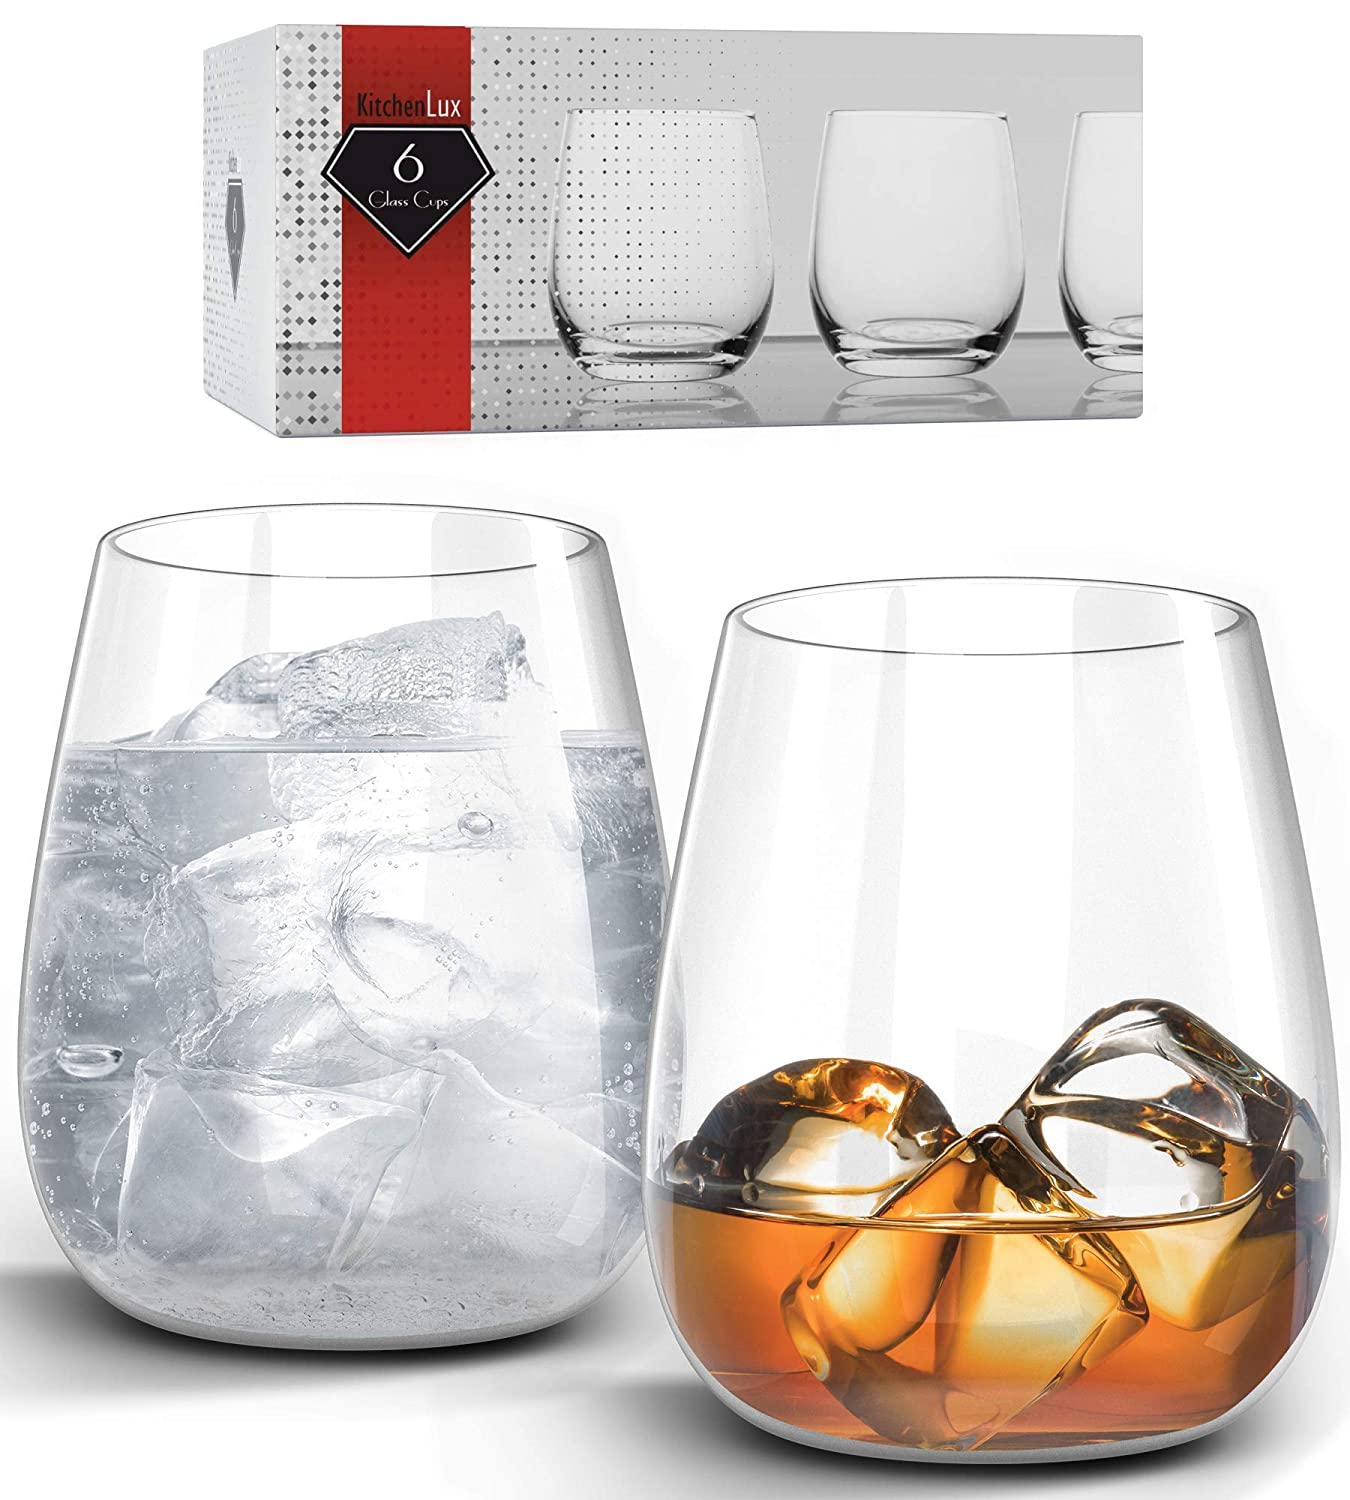 Dishwasher Safe Set of 6 Kitchen Lux 12oz Drinking Glass Tumbler Premium Clear Glasses For Wine Cocktails Shots Elegant Stemless Design Scotch and All Purpose Drinking Cups